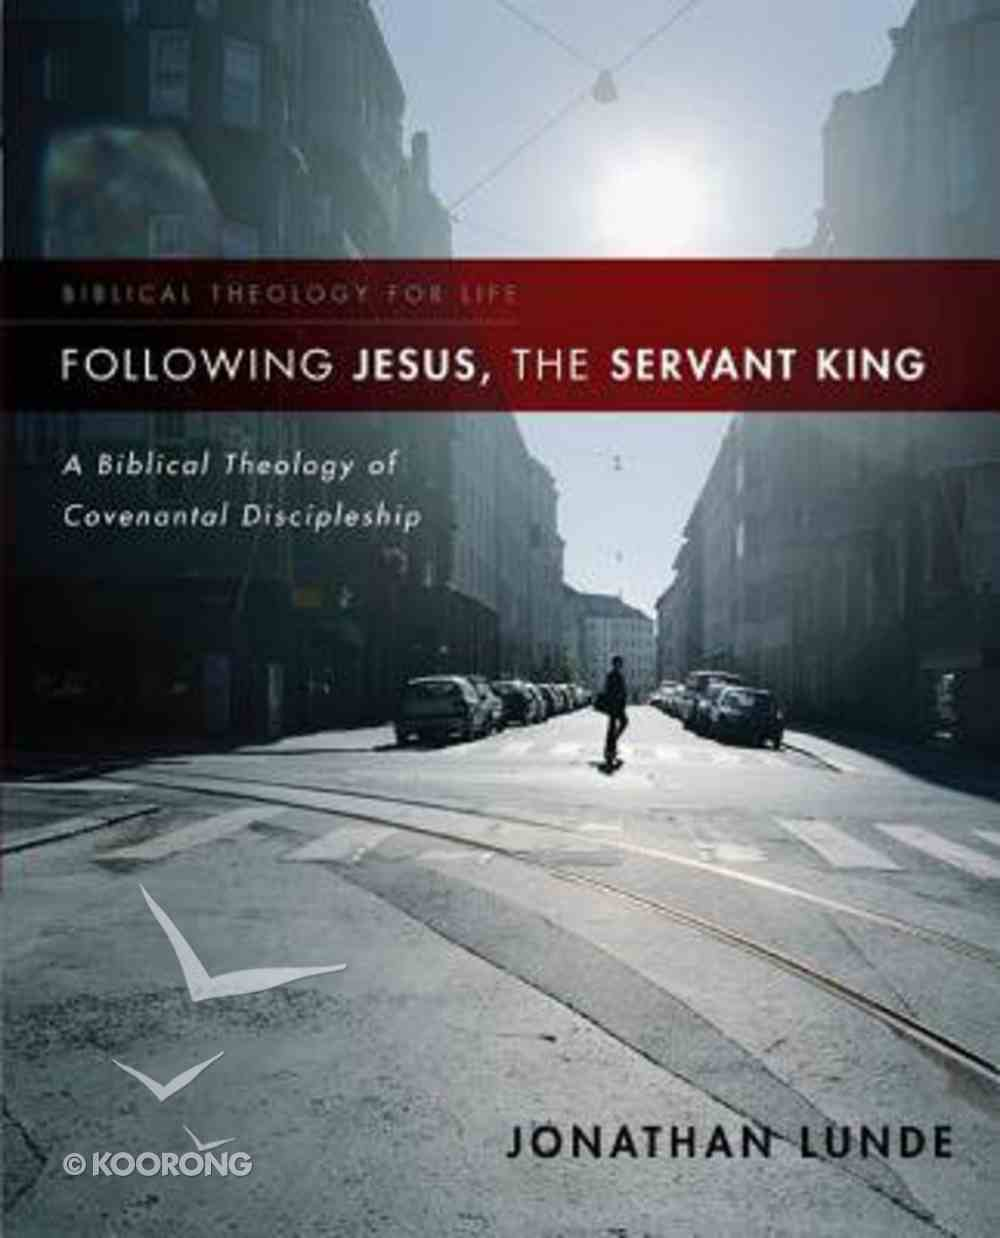 Following Jesus, the Servant King: A Biblical Theology of Covenantal Discipleship (Biblical Theology For Life Series) Paperback